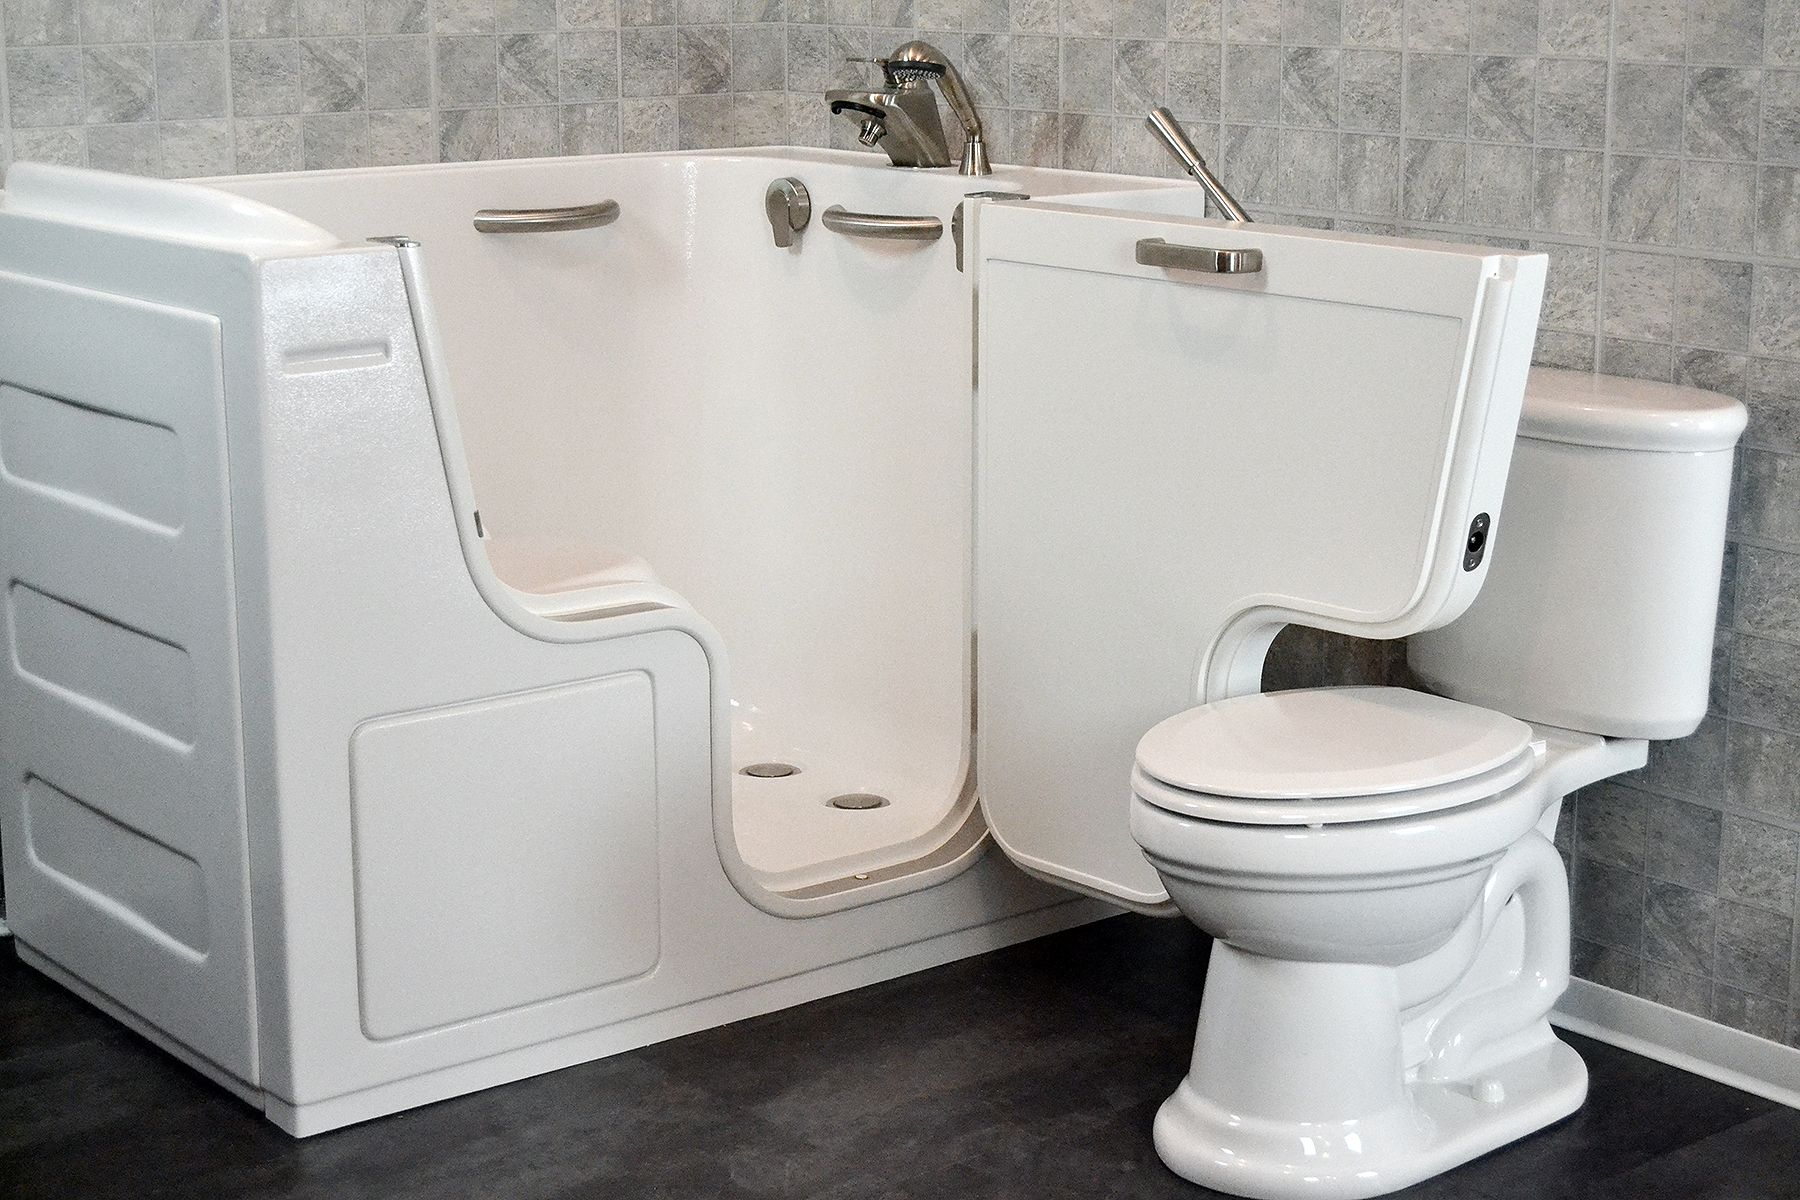 walk in tubs for the elderly - Yahoo Image Search Results   30 ...